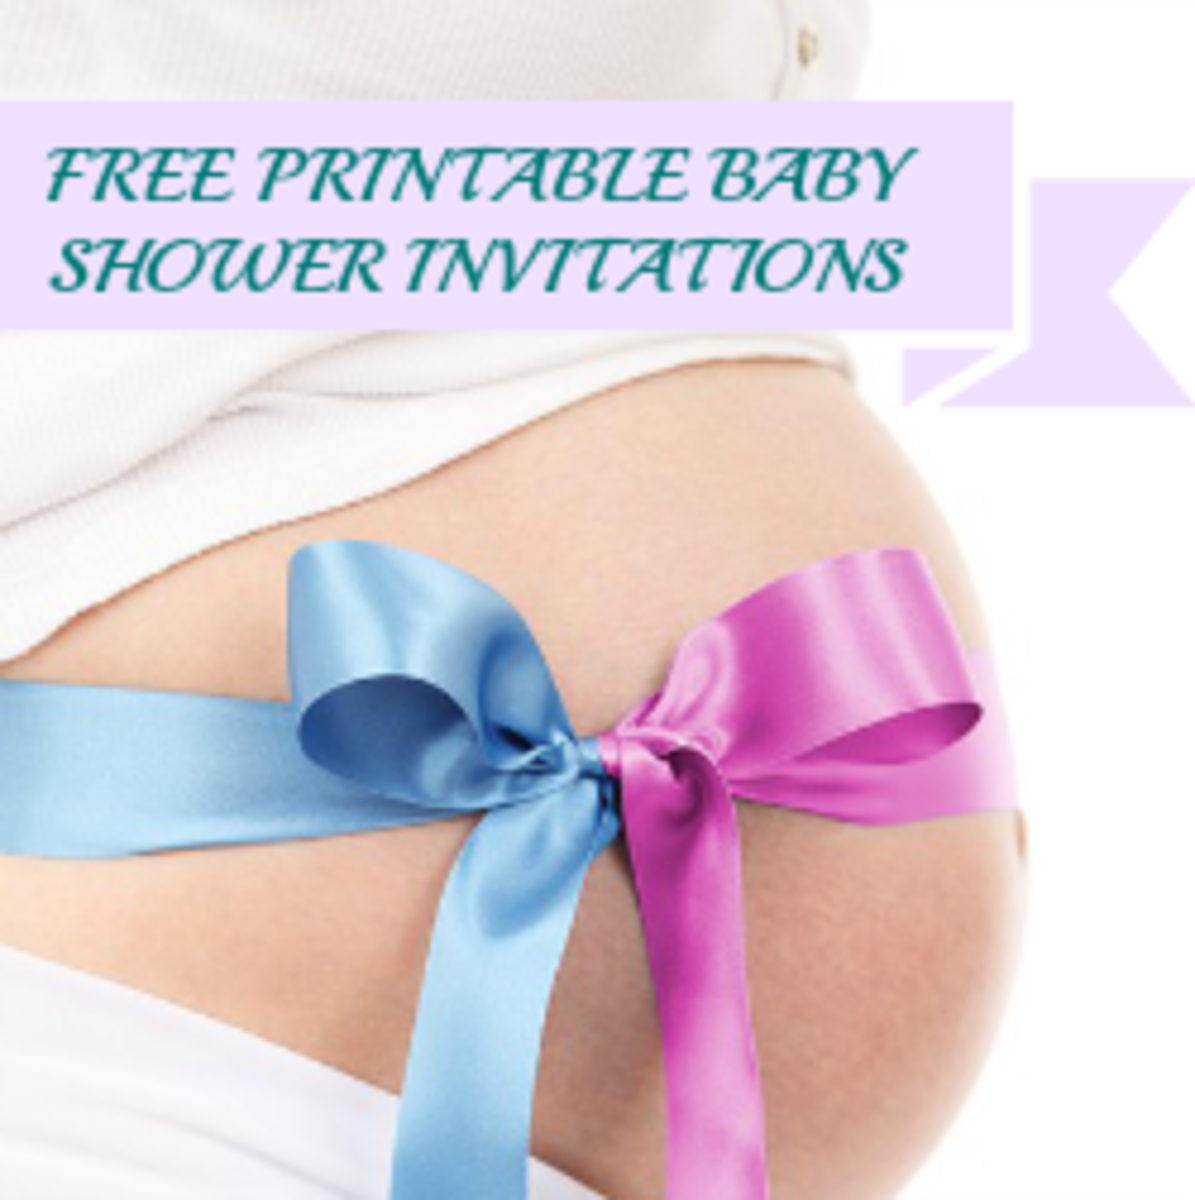 free printable baby shower invitations for boys and girls  hubpages, Baby shower invitations